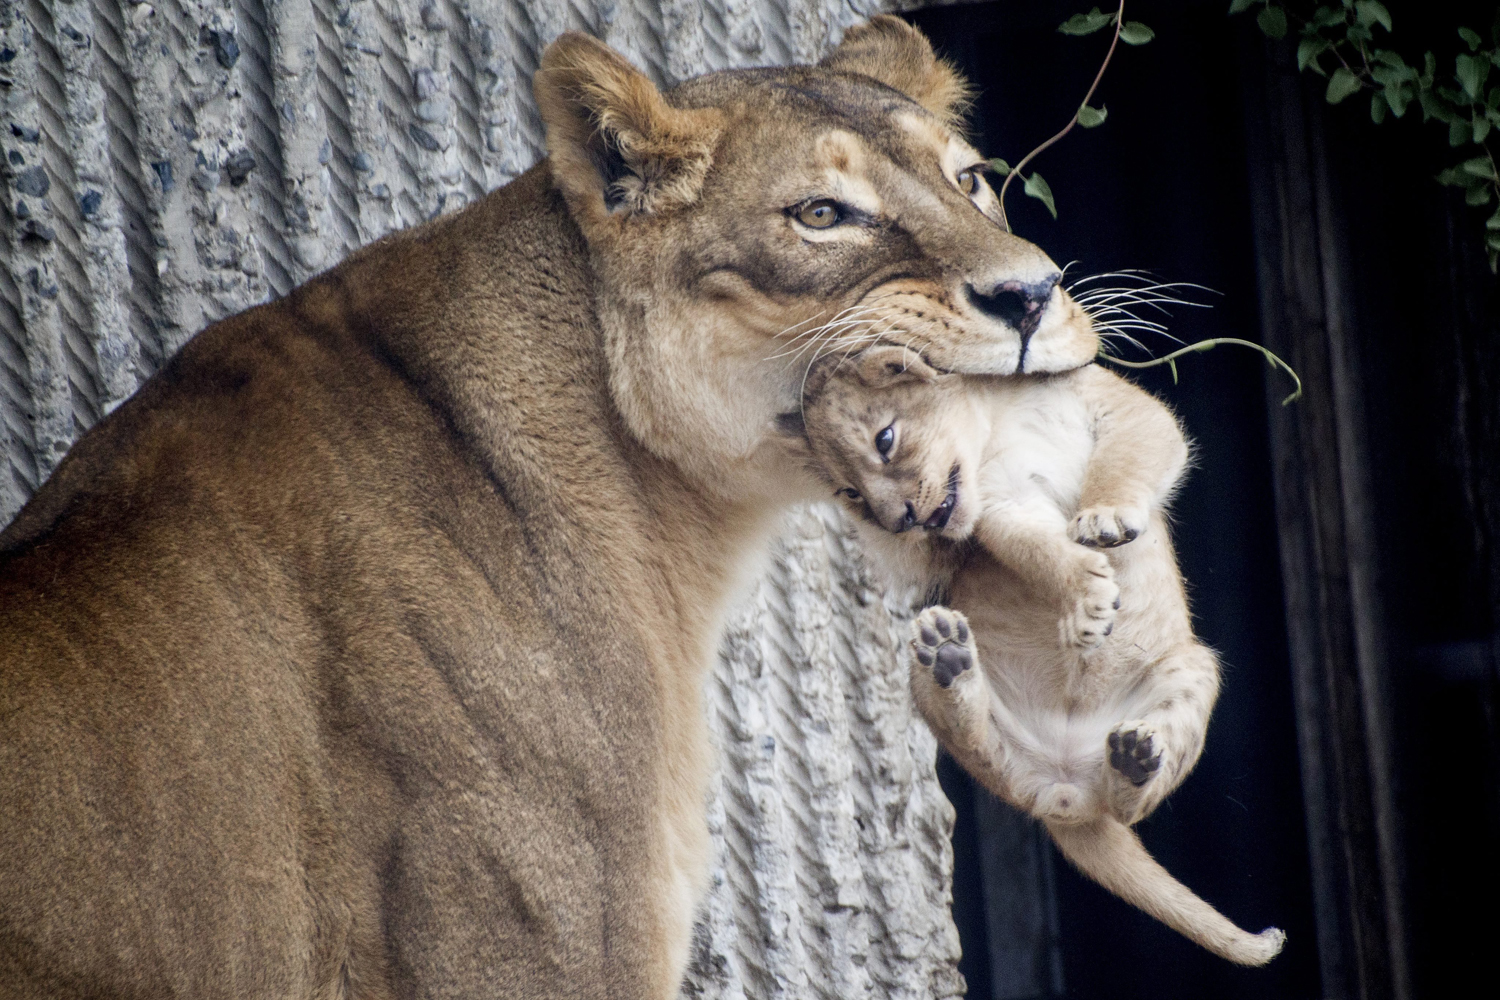 Mar. 25, 2014. Copenhagen Zoo is once again in the world news after it was reported that the zoo put down four healthy lions. It sparked a world wide outrage when the zoo put down the giraffe Marius on Feb. 9,  2014 and made a public autopsy.